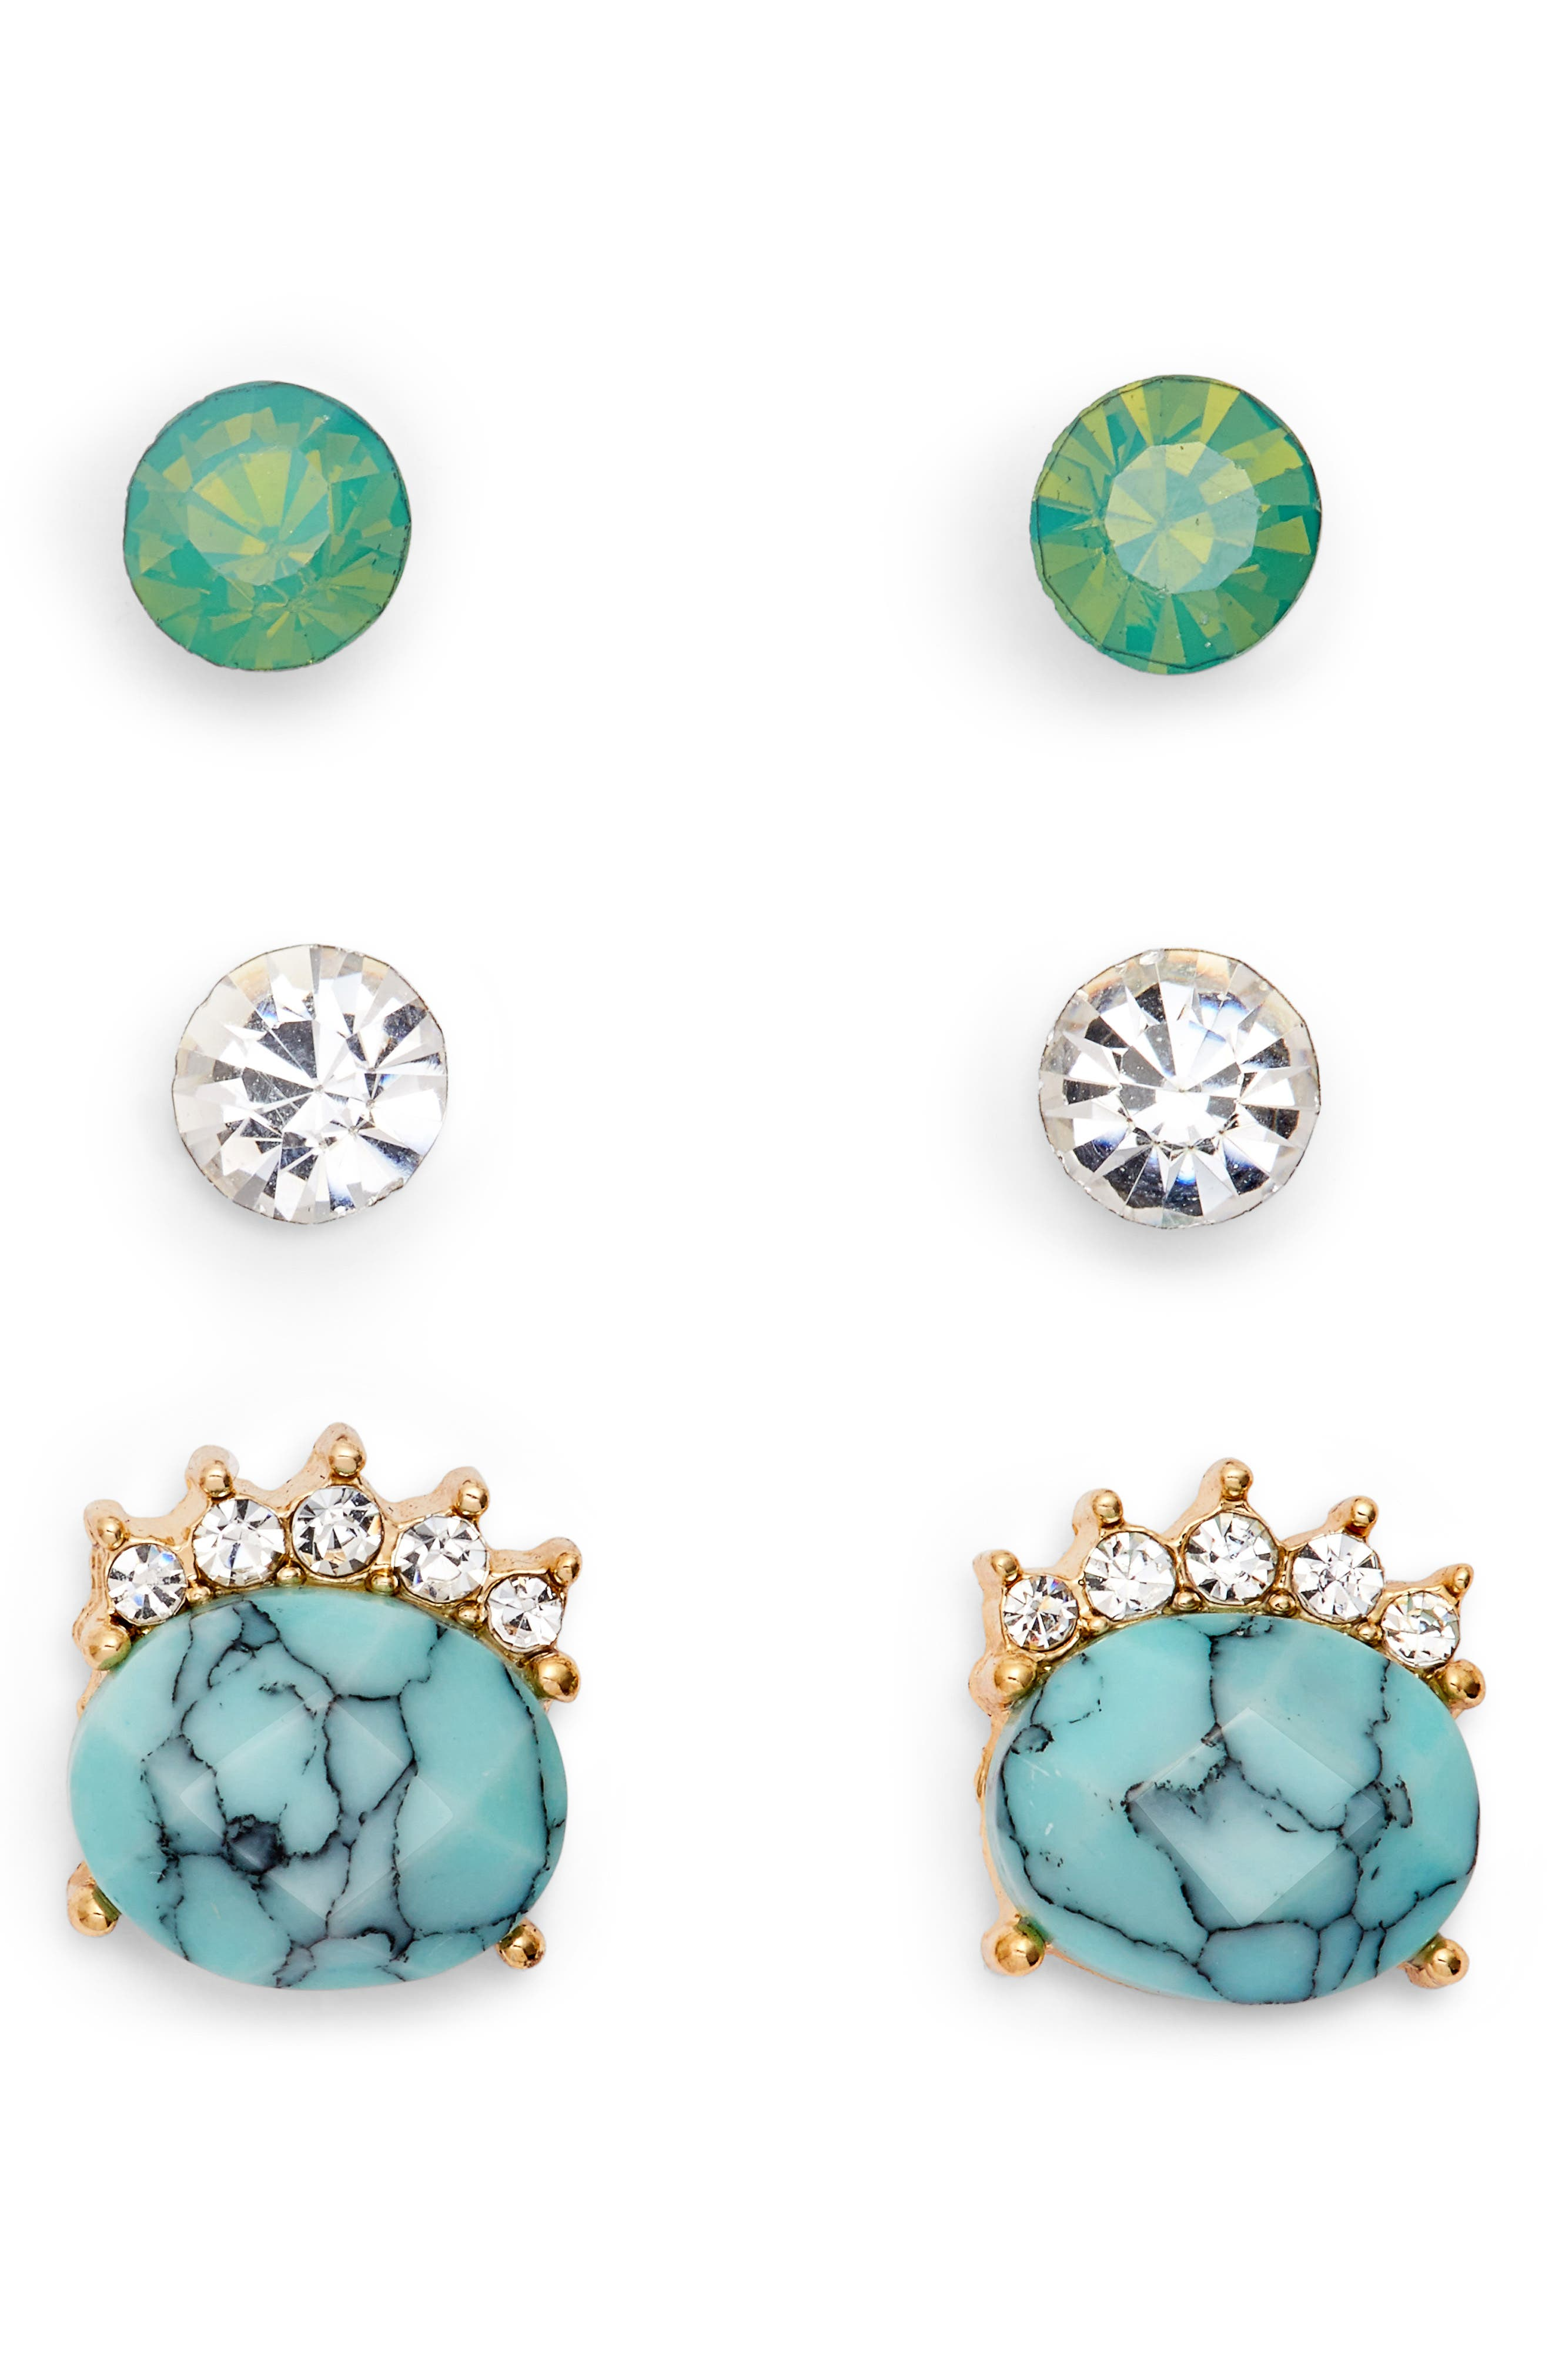 Assorted 3-Pack Turquoise Stud Earrings,                         Main,                         color, 400